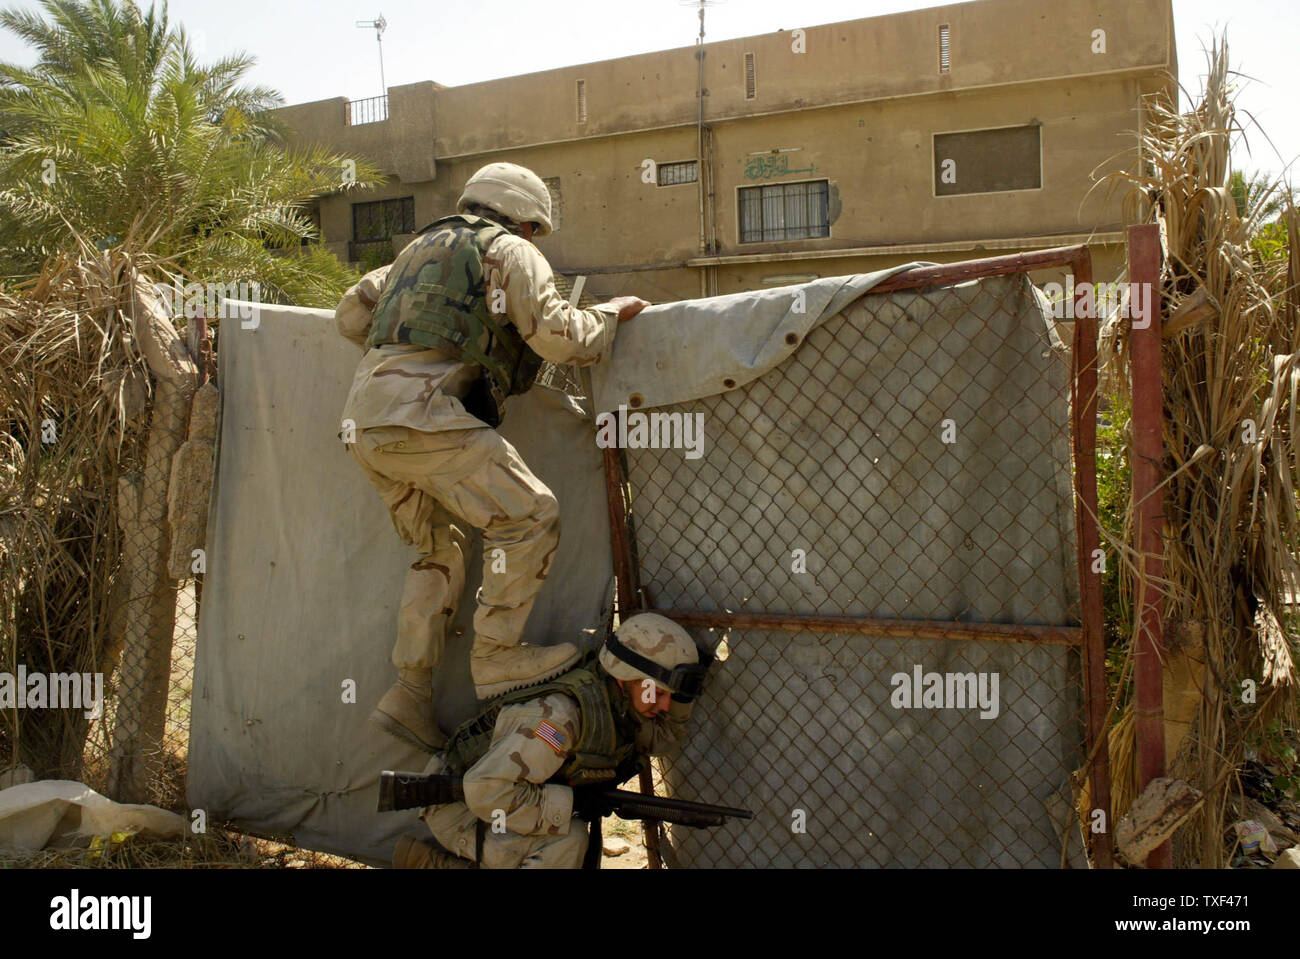 The U.S. Army 1st Cavalry Division search homes of suspected insurgents for weapons and explosives in southwestern Baghdad as part of an operation to help stabilize the country just days before the transfer of sovereignty to Iraq.  (UPI Photo/Mitch Prothero) Stock Photo